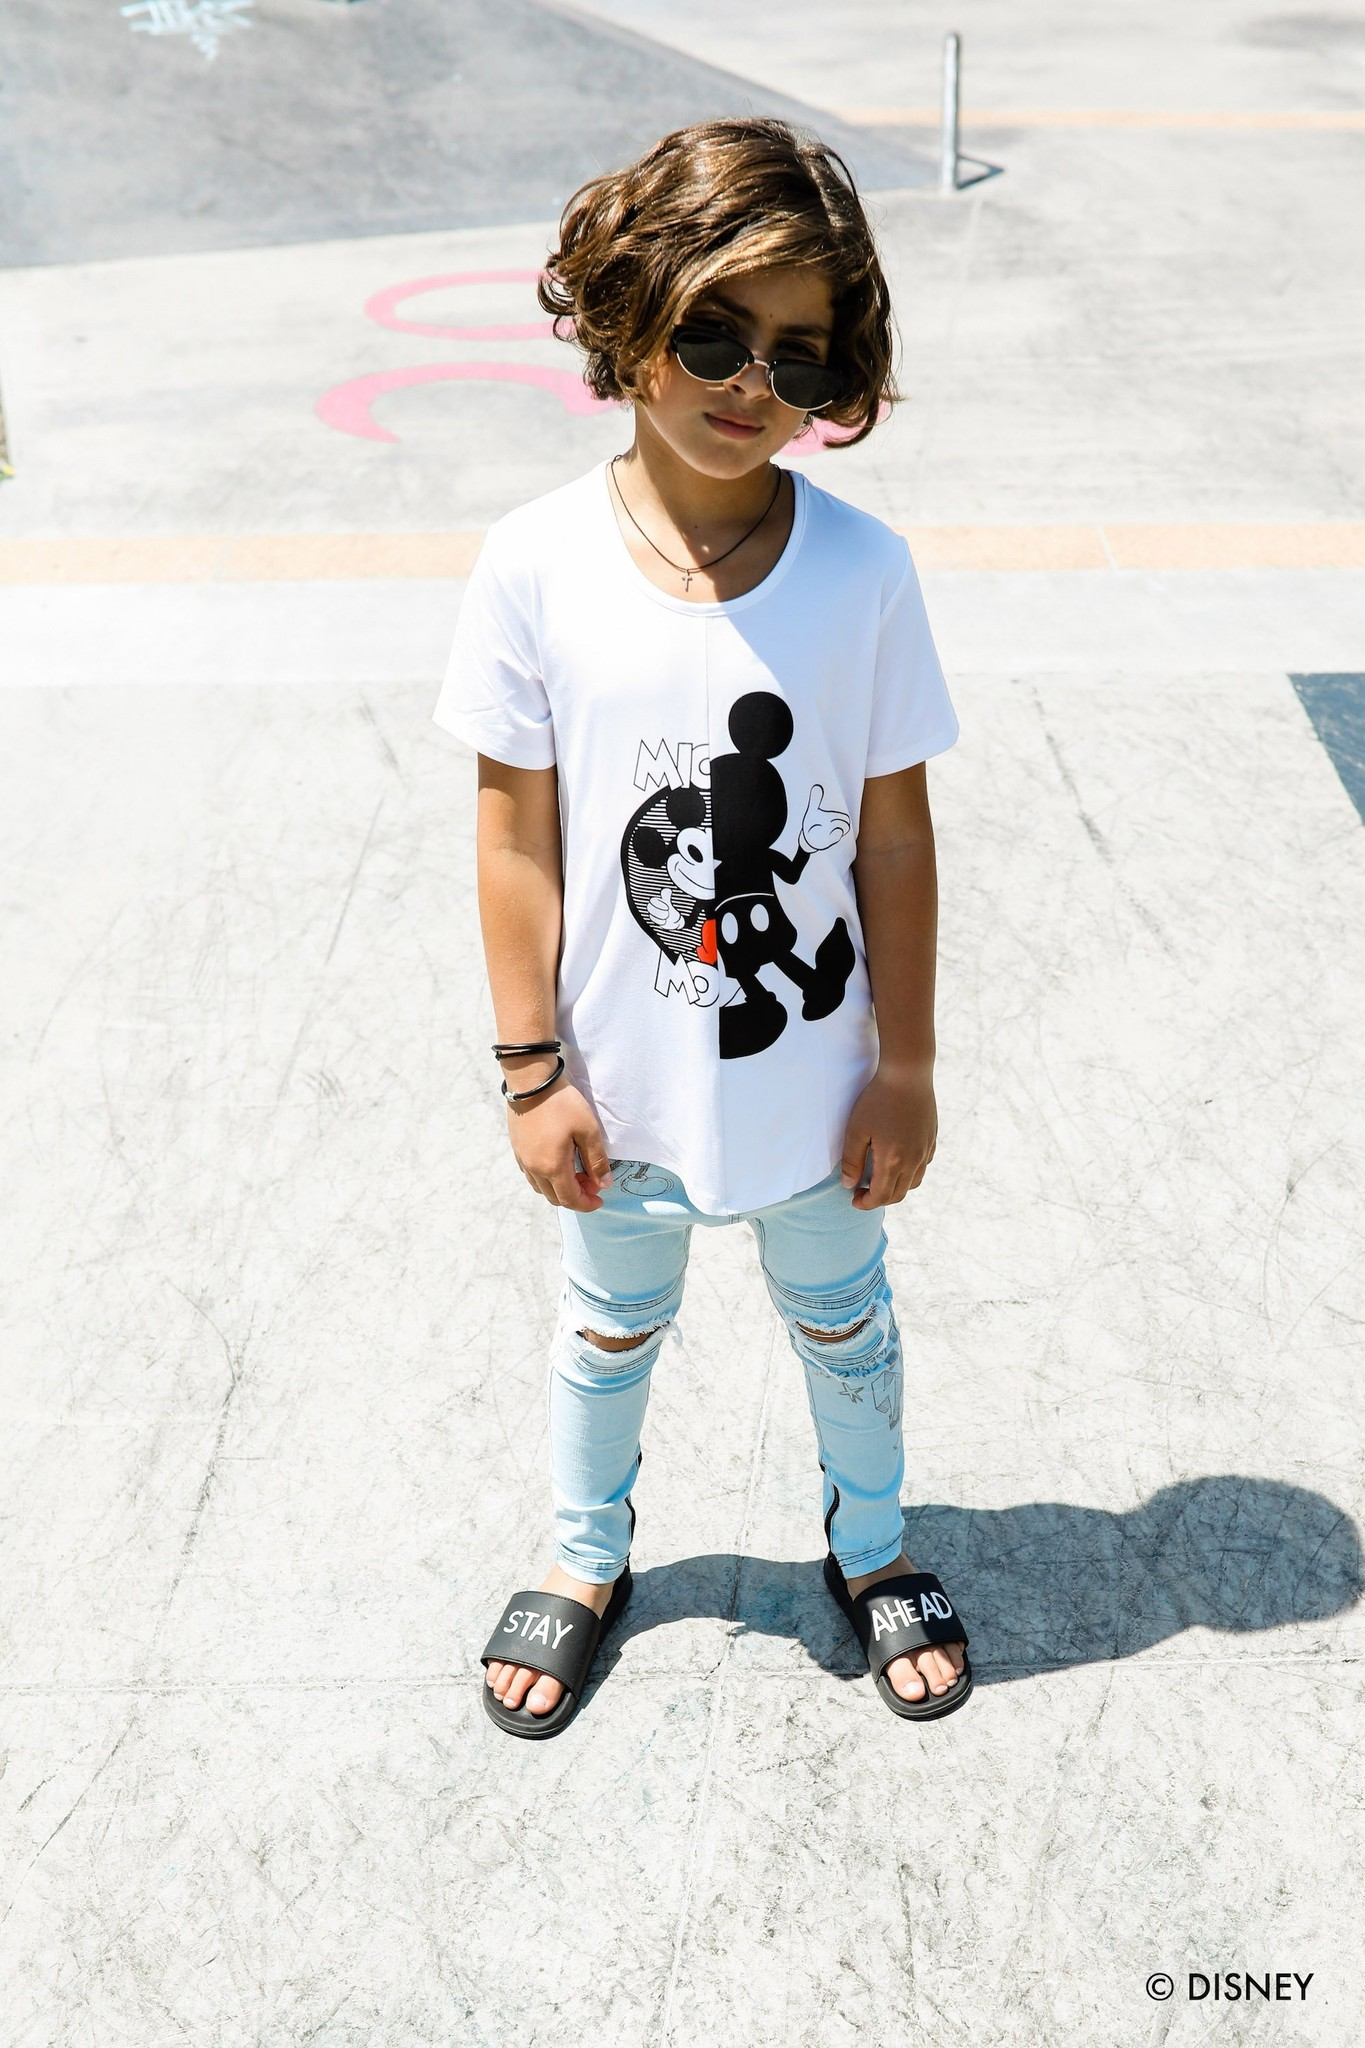 Adam + Yve WHITE BASIC SHIRT FOR BOYS   COOL CLOTHING MICKEY MOUSE   CHILDREN'S CLOTHING